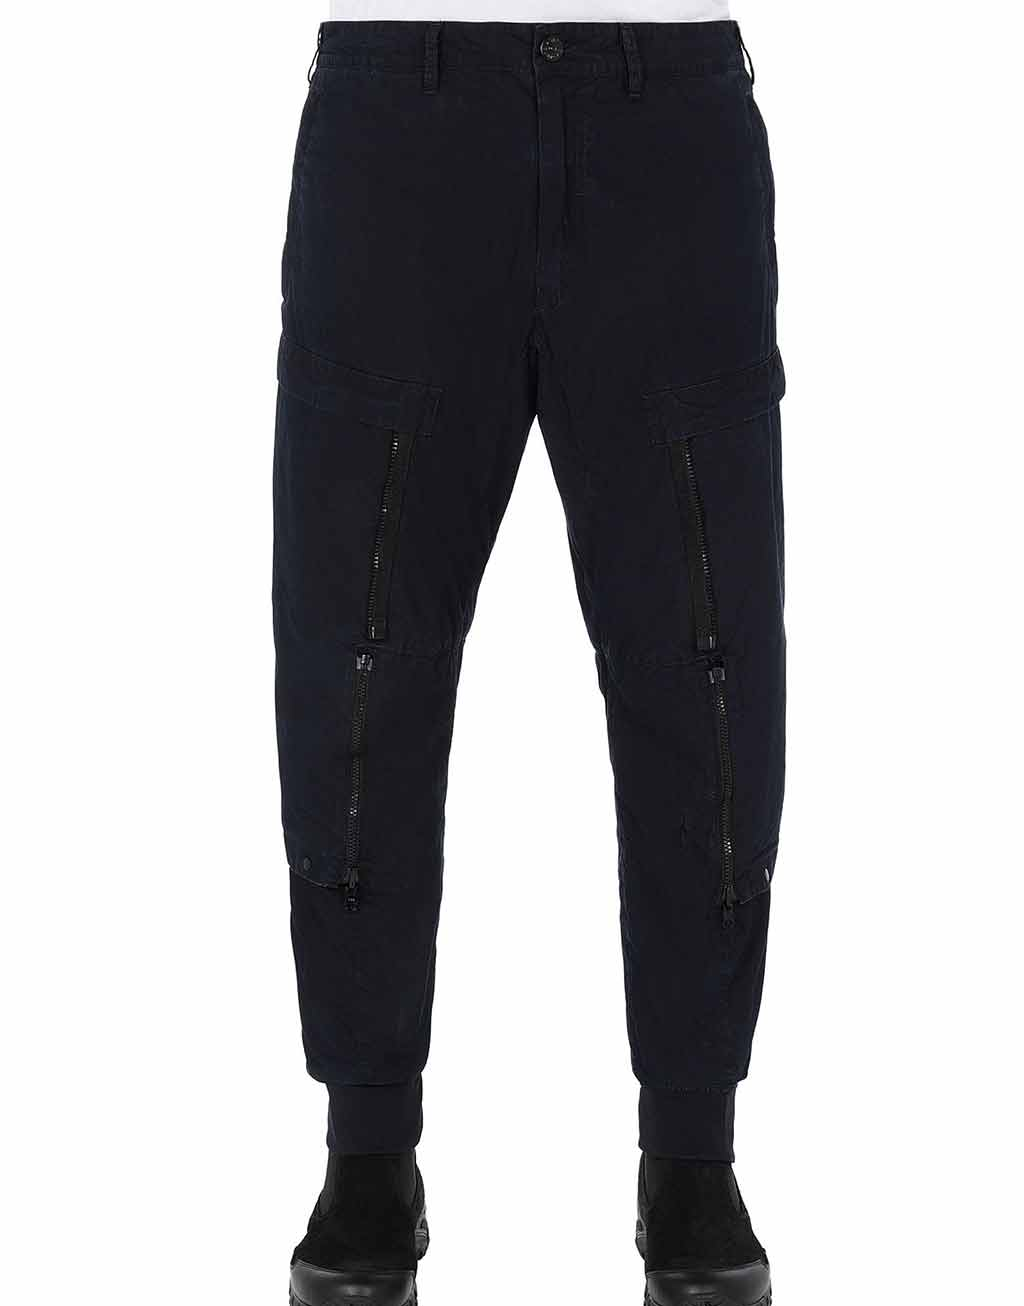 best techwear pants 1